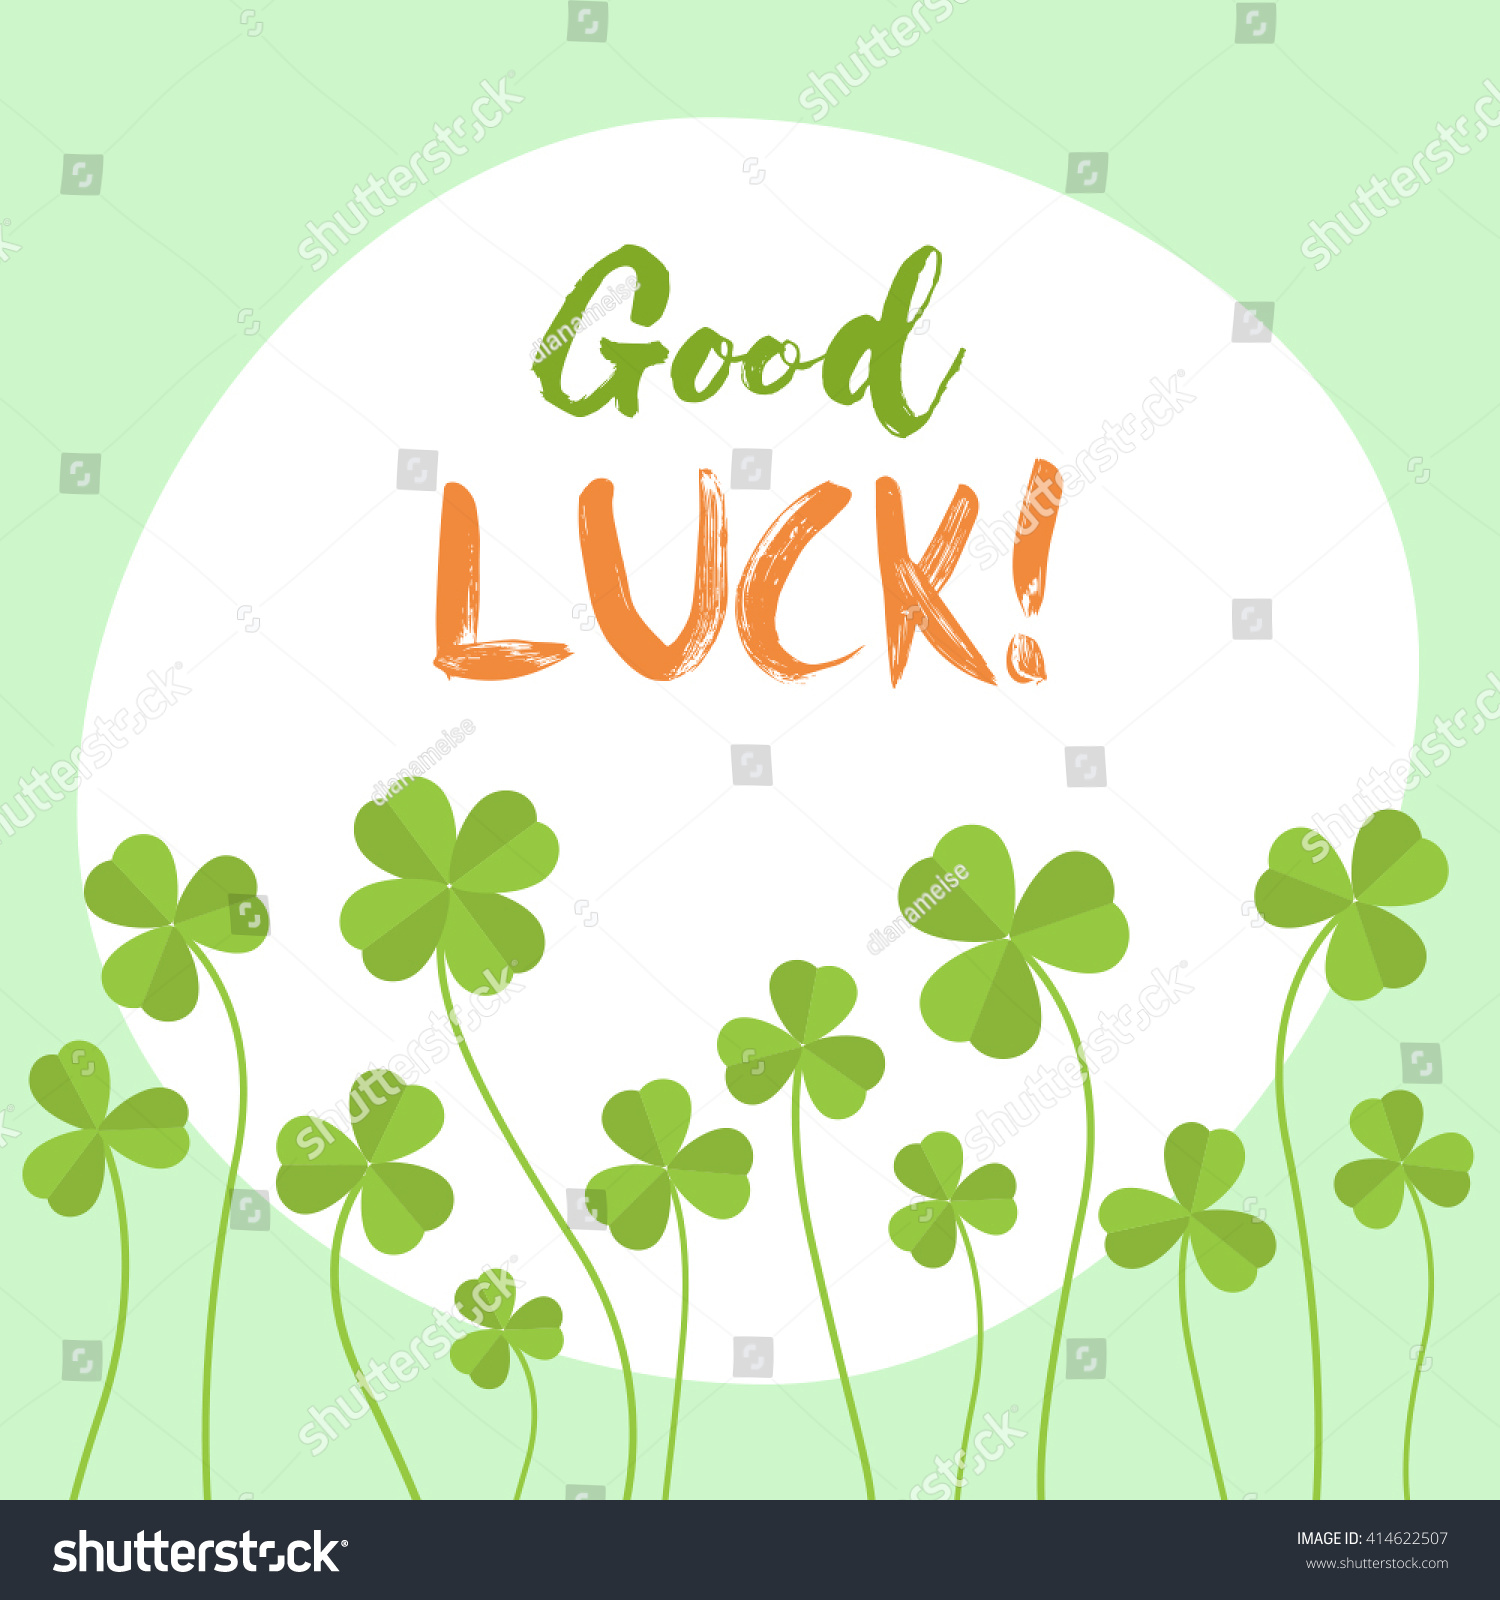 How To Have Good Luck good luck flat vector card have stock vector 414622507 - shutterstock